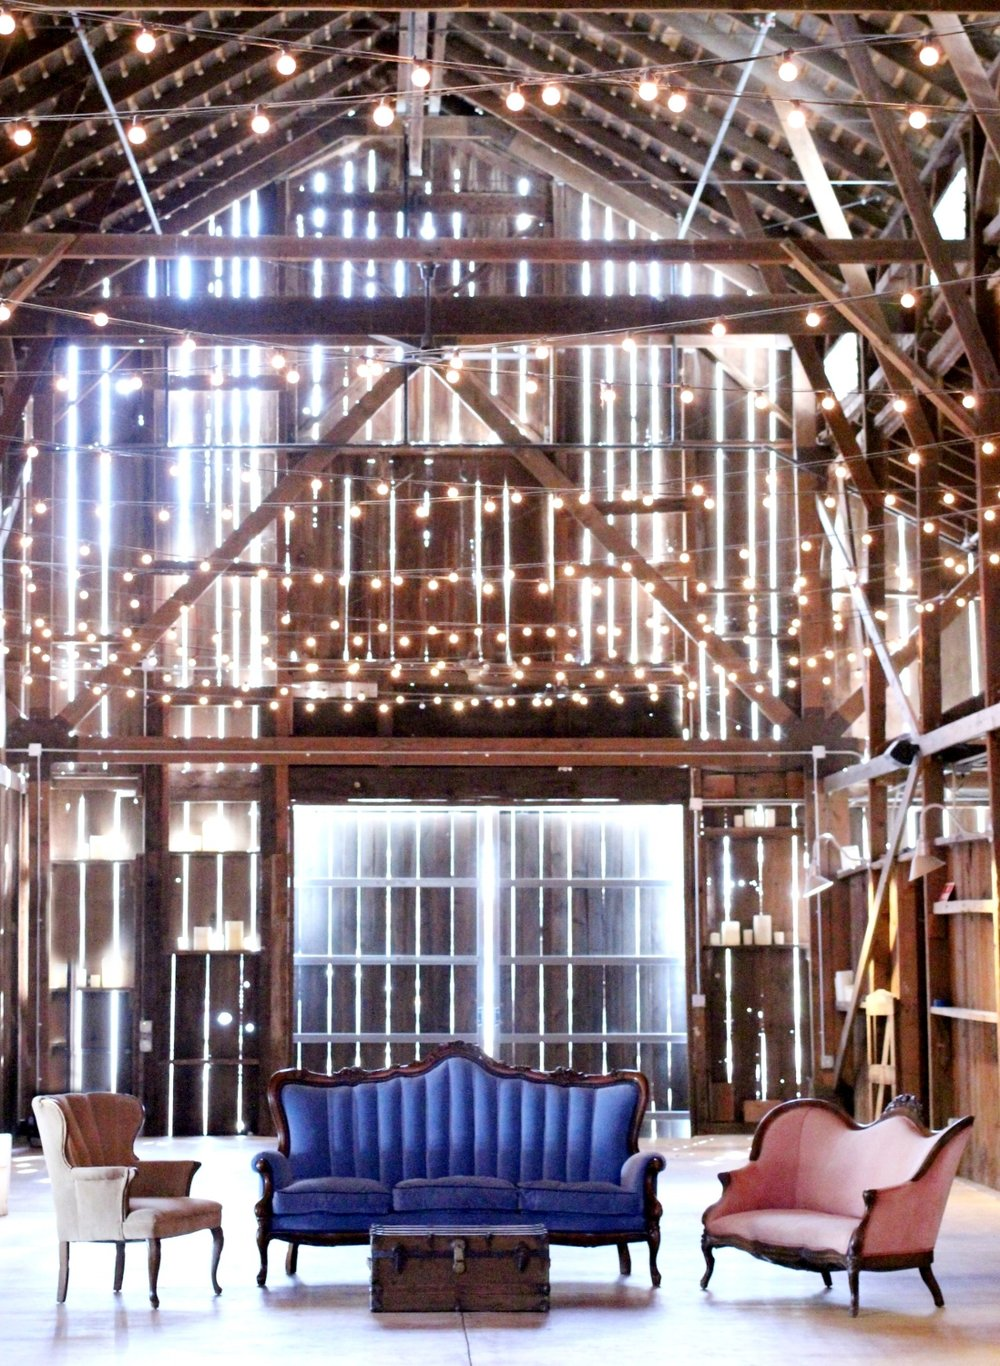 Lounge in Barn - Second Clone Edit.jpg